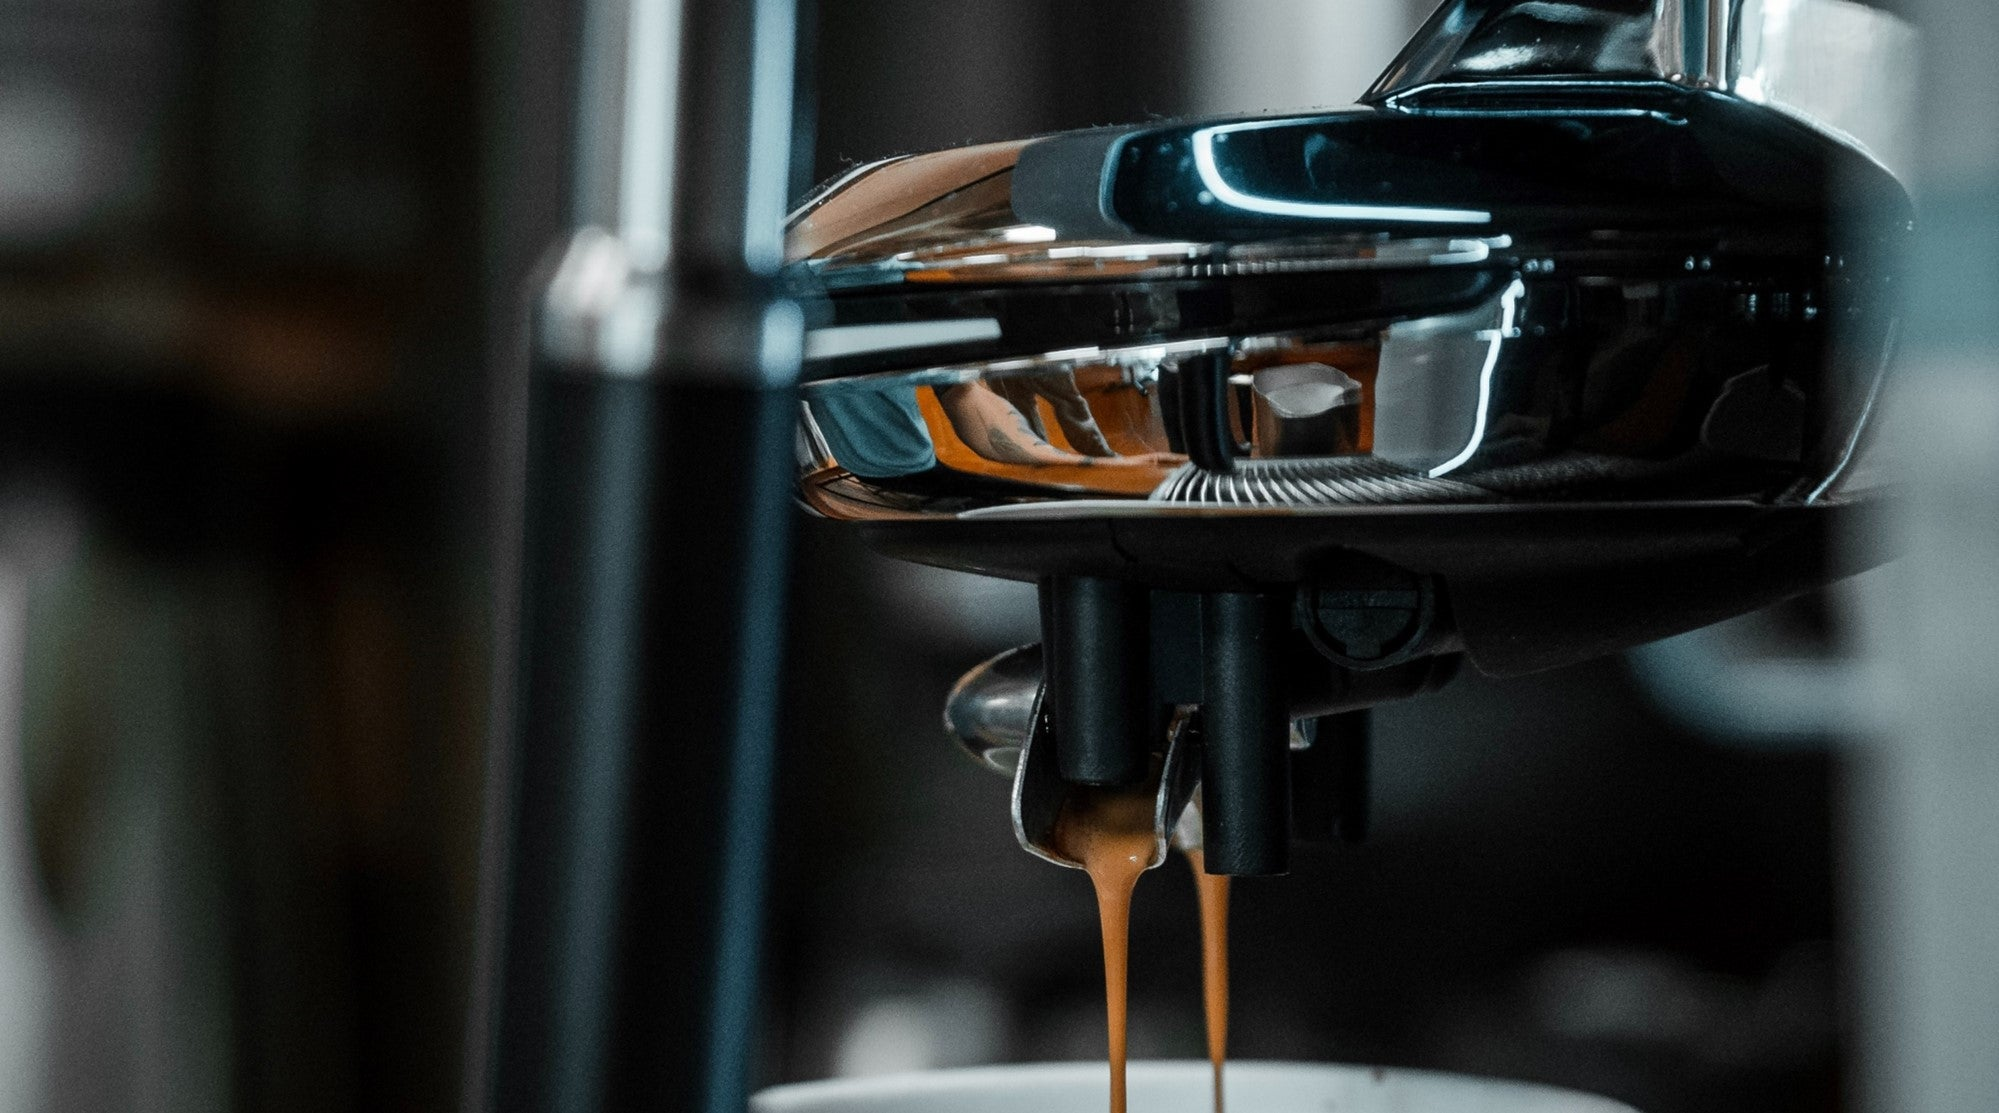 Espresso Machines & Coffee Pods